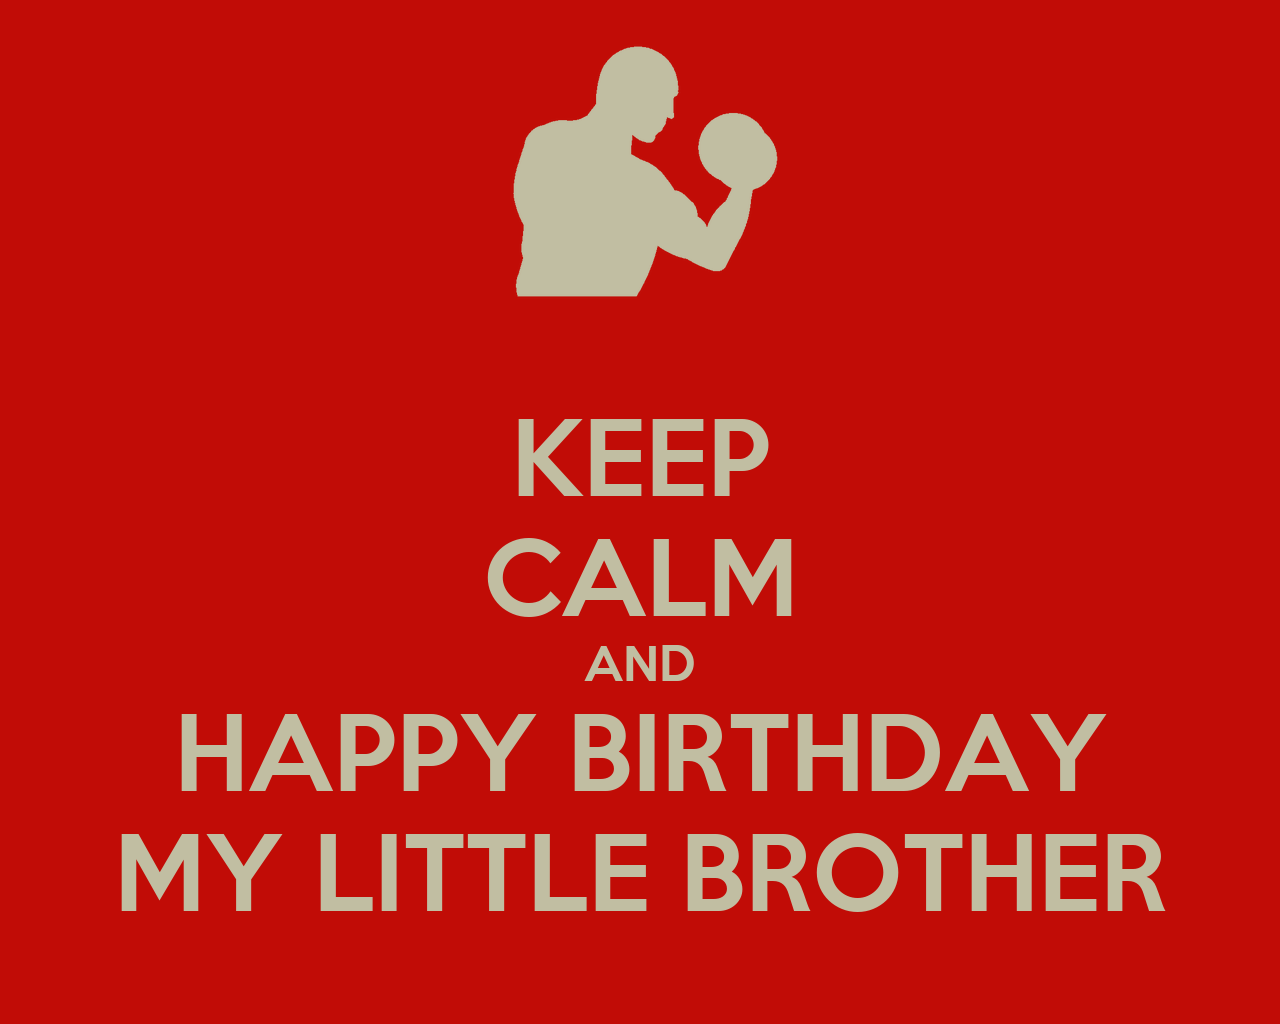 KEEP CALM AND HAPPY BIRTHDAY MY LITTLE BROTHER